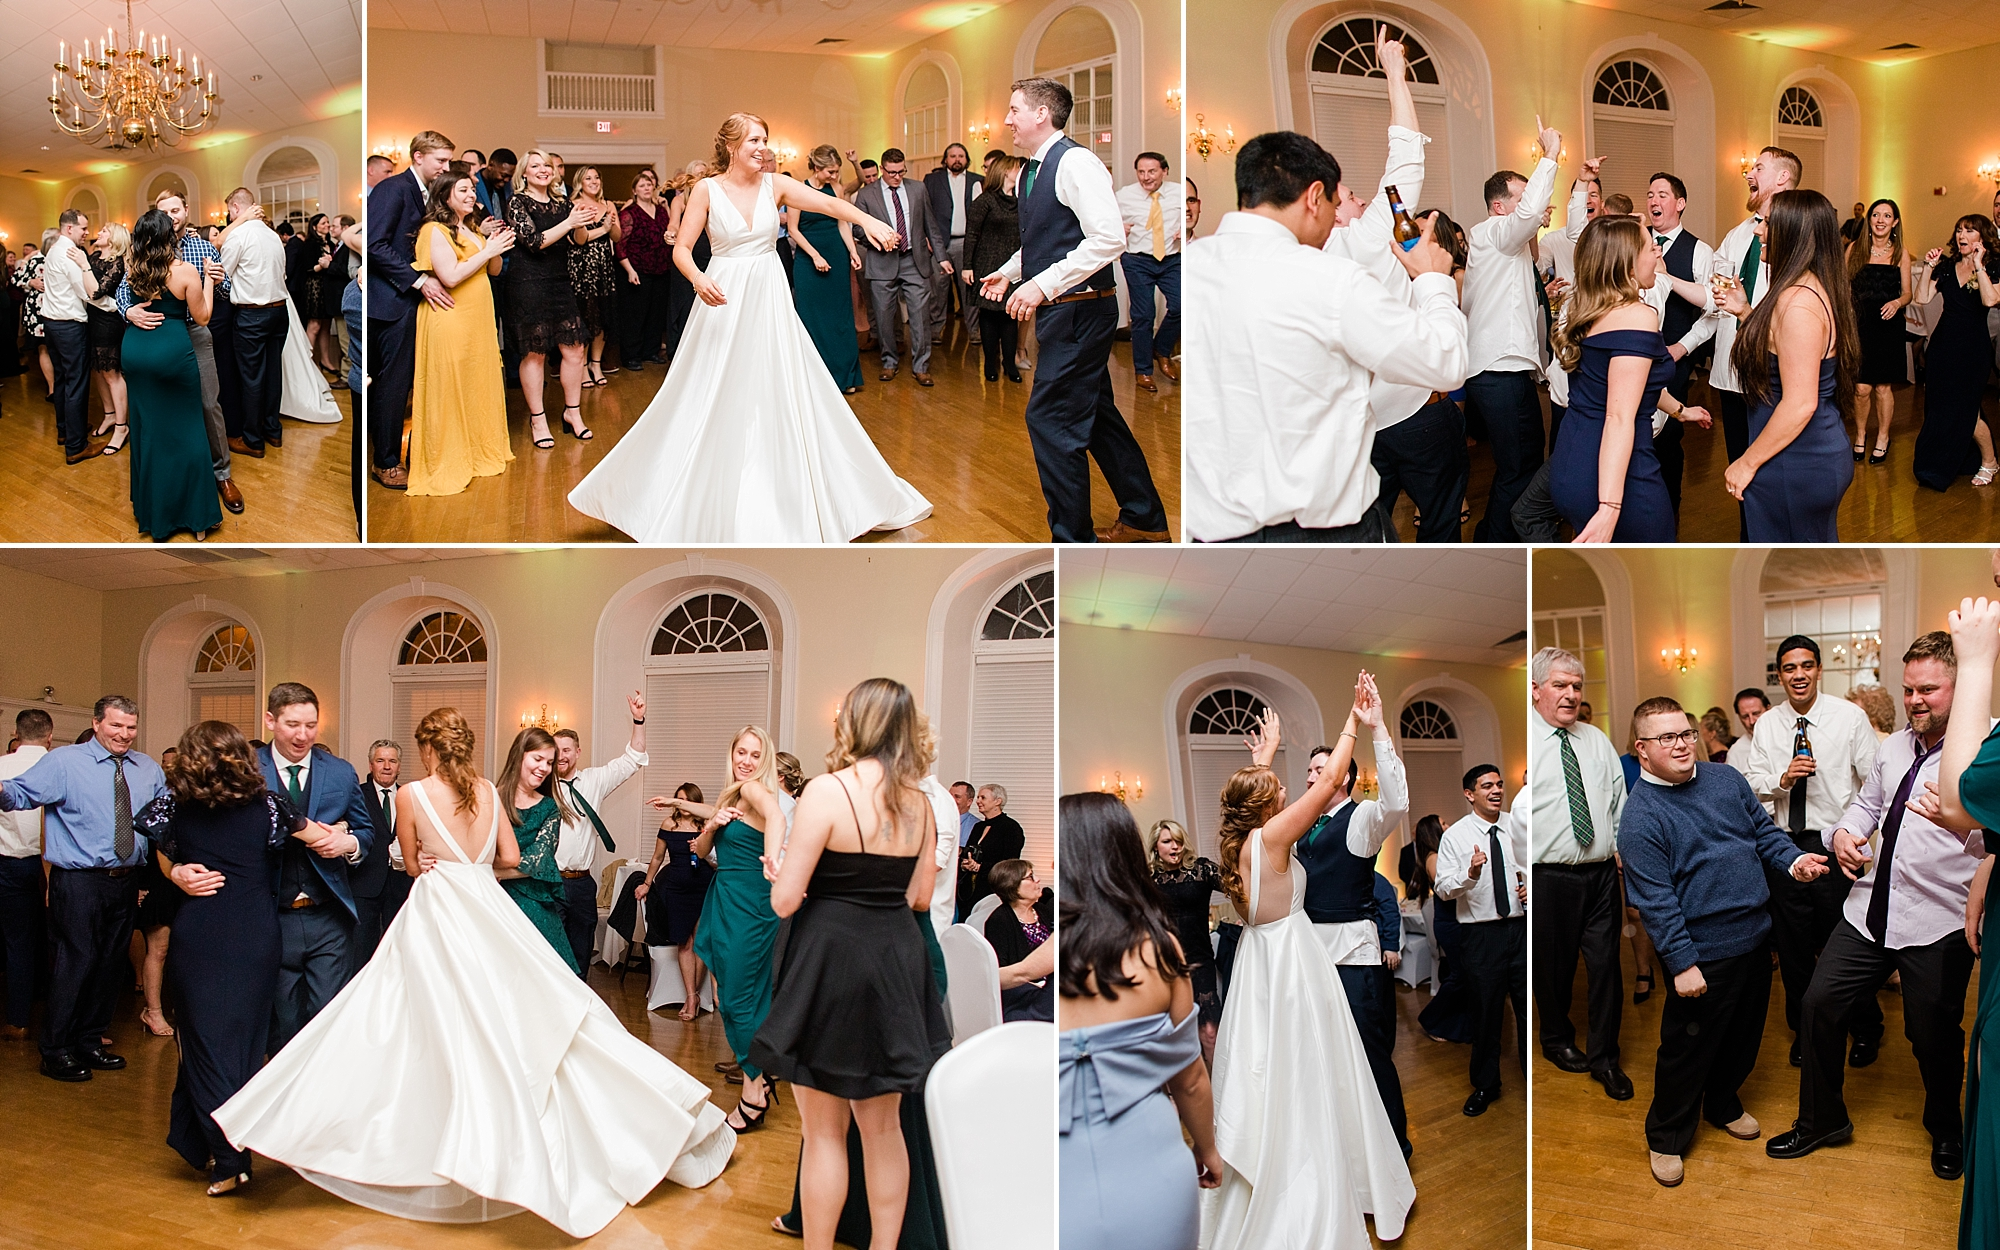 This Irish jig fueled dance floor did not disappoint! Anna & Bobby's wedding guests couldn't wait to get on the dance floor!